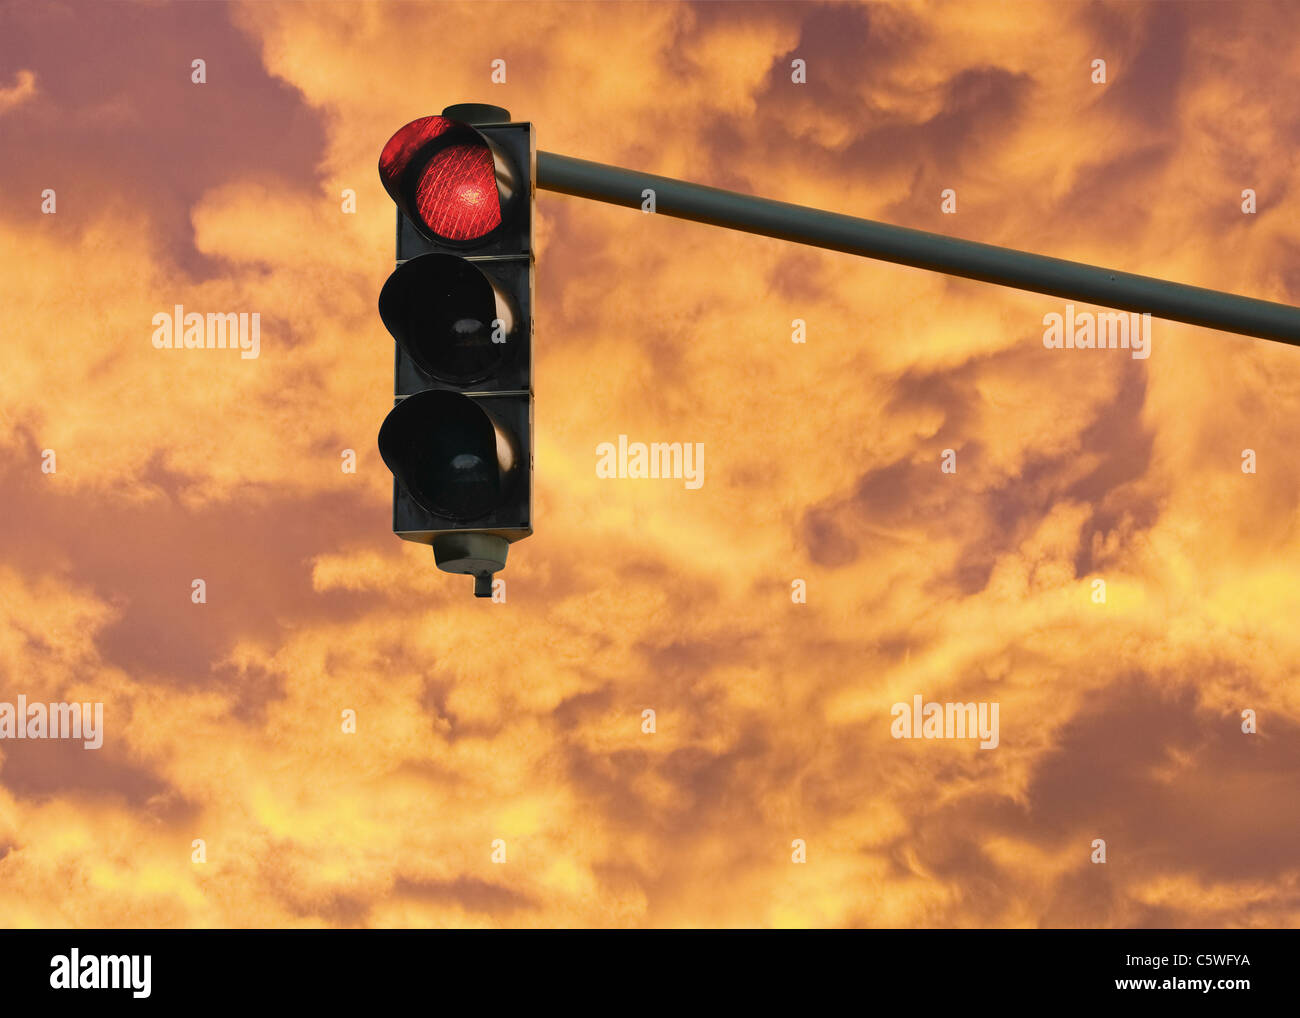 Allemagne, vue de feu montrant red light Photo Stock